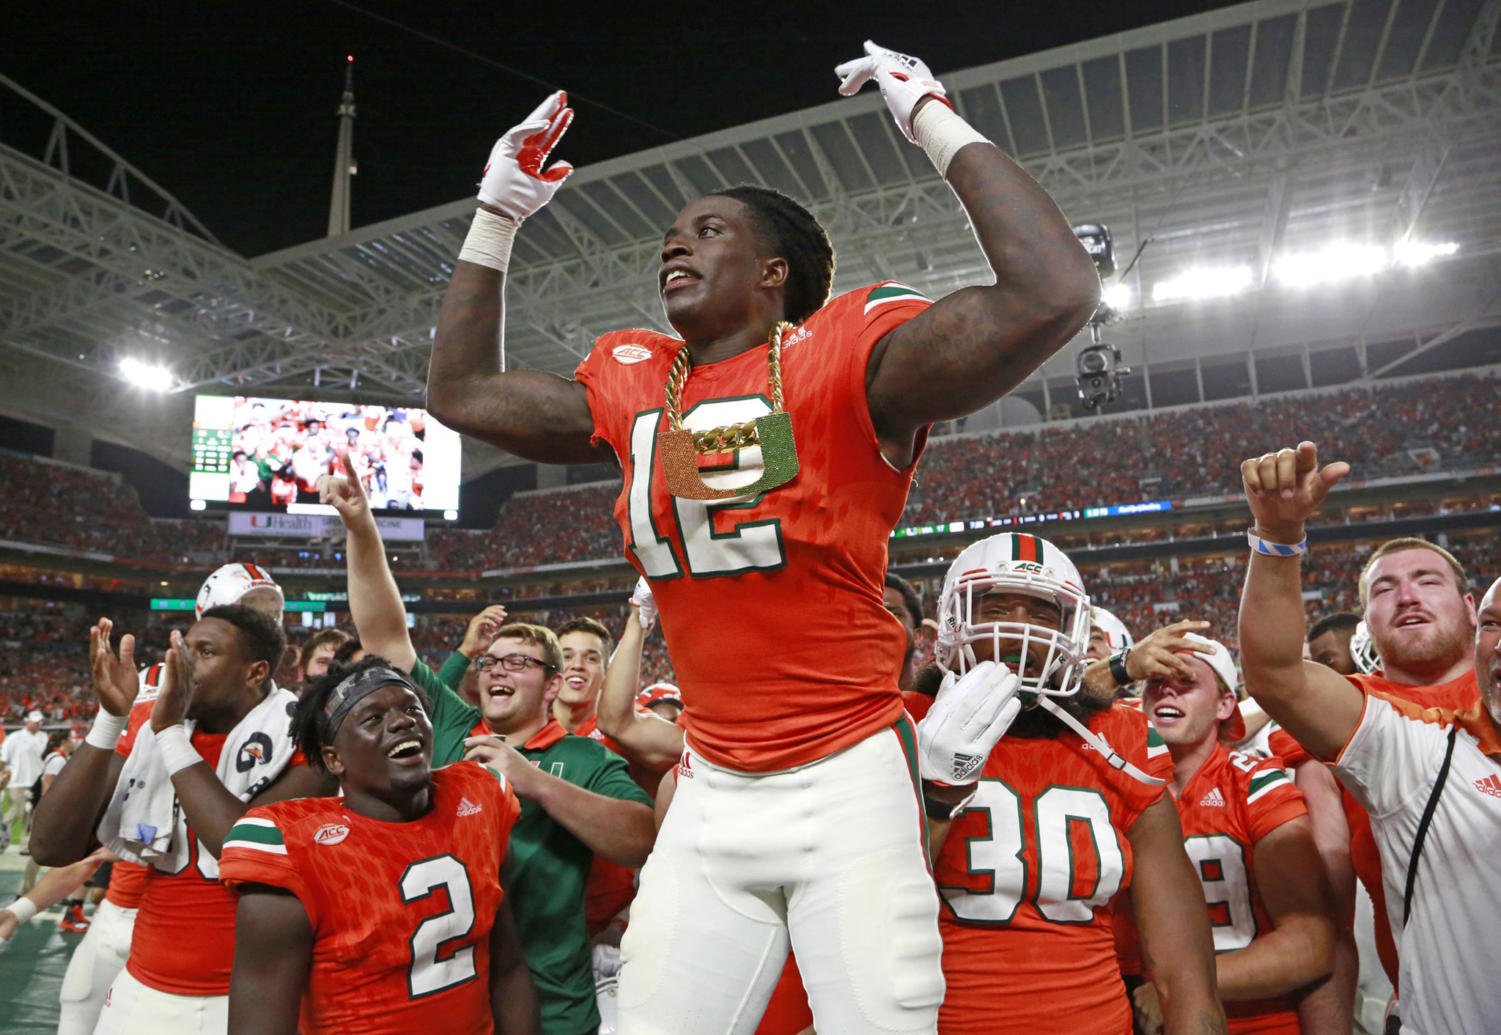 Miami Up to No. 4 in Playoff Rankings Projection After Upset Weekend